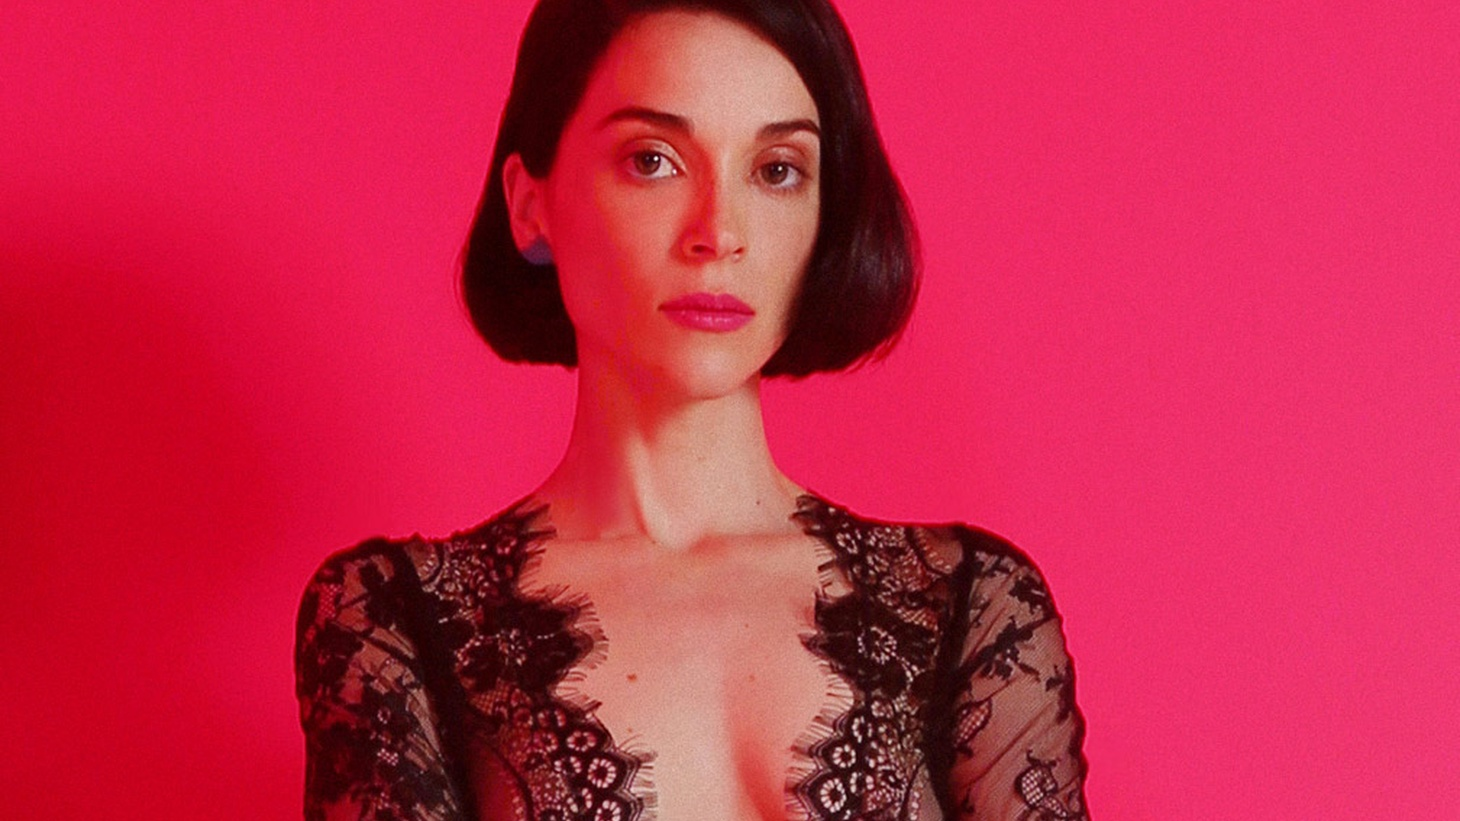 St Vincent's fifth studio album is an excursion in adventurous pop by one of music's most creative minds.